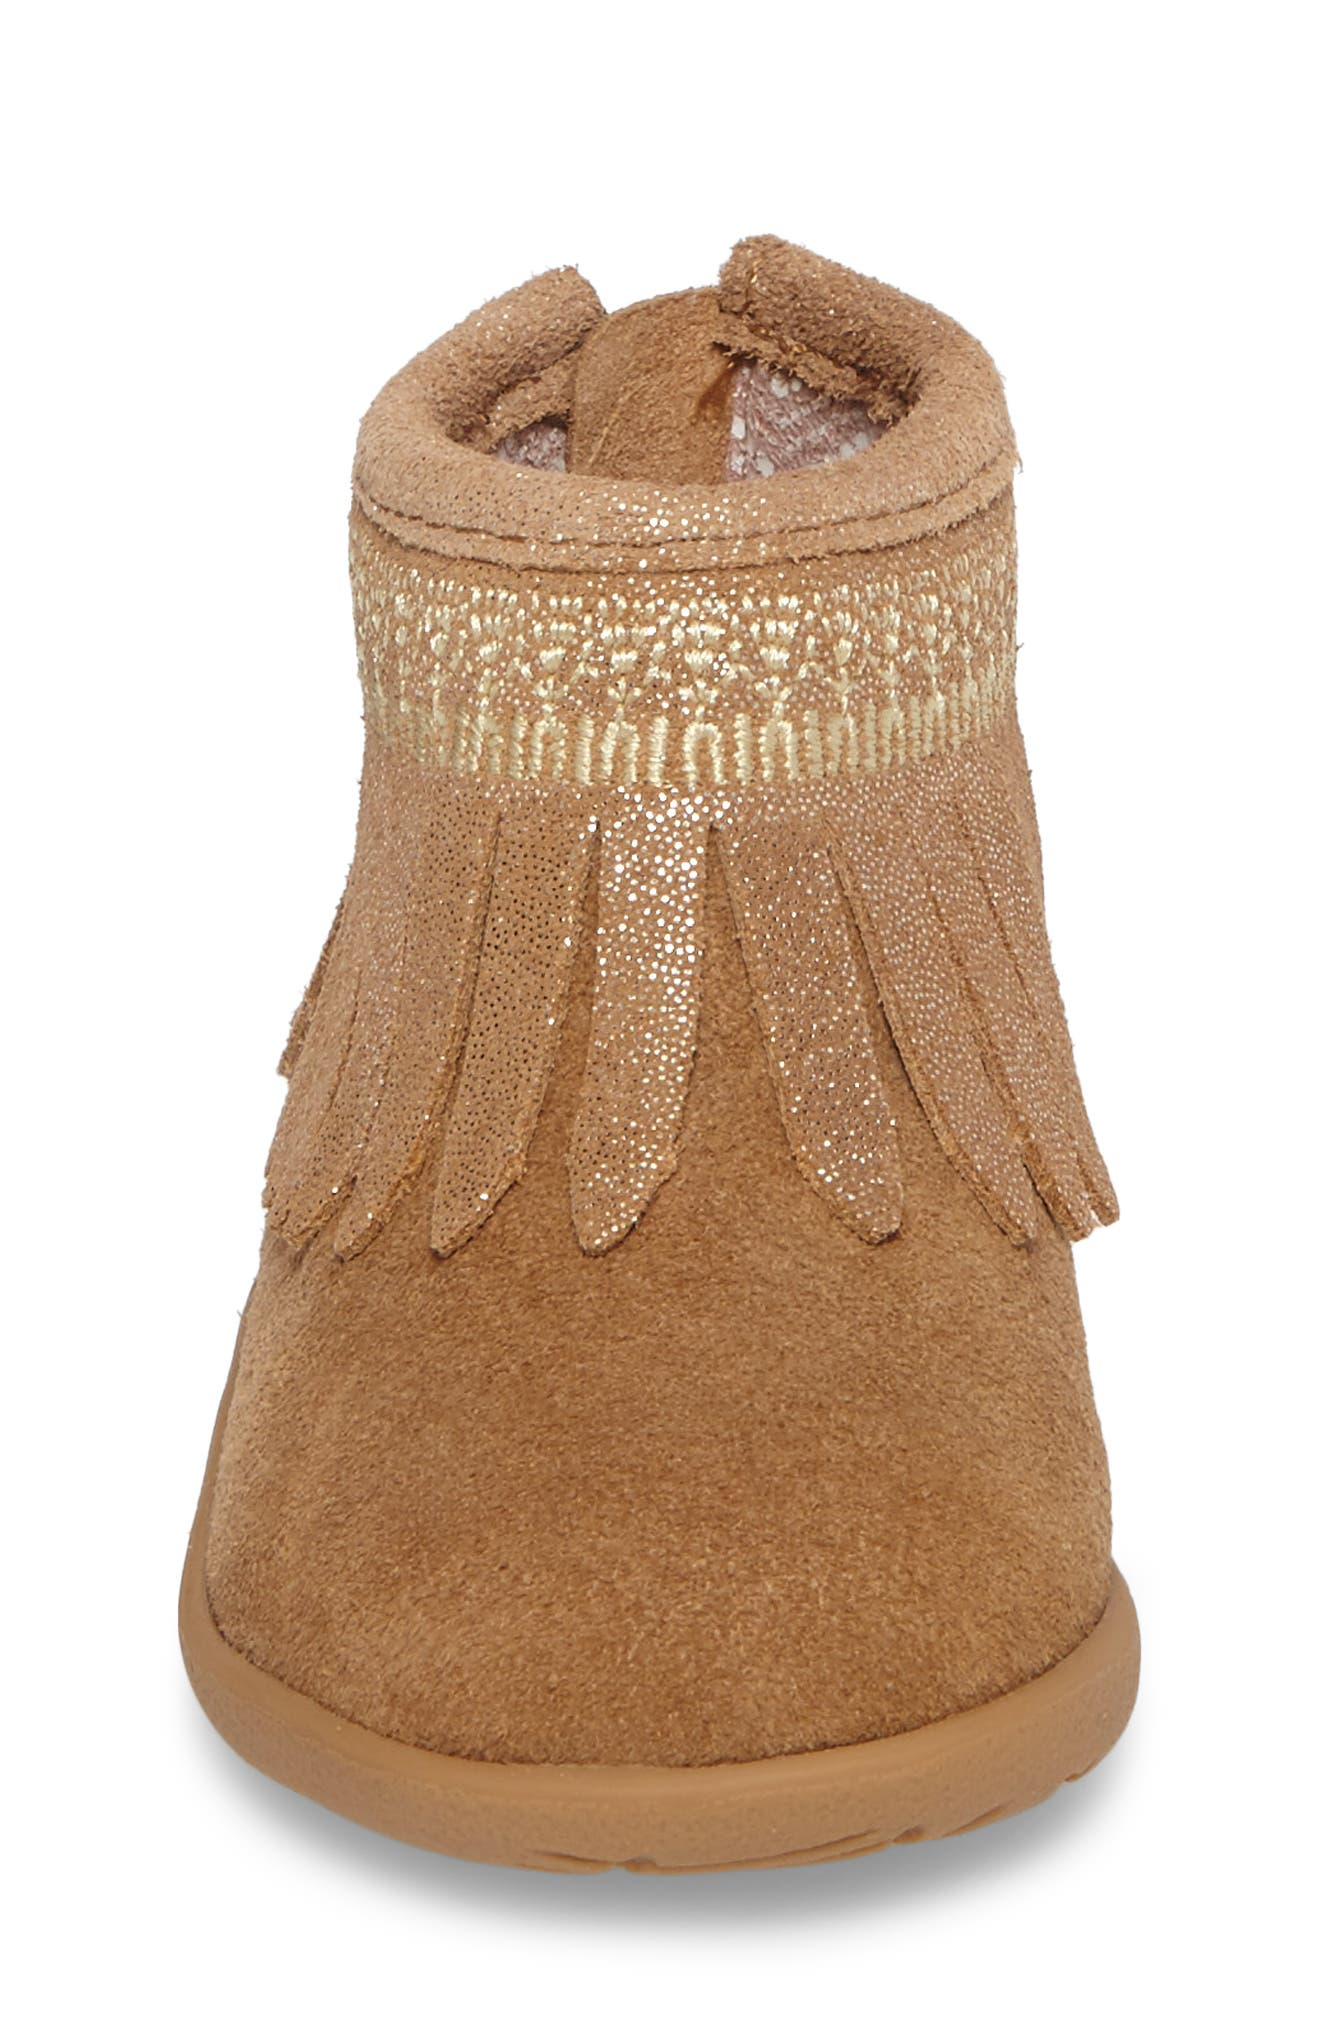 Gracia Sparkle Fringe Bootie,                             Alternate thumbnail 4, color,                             200